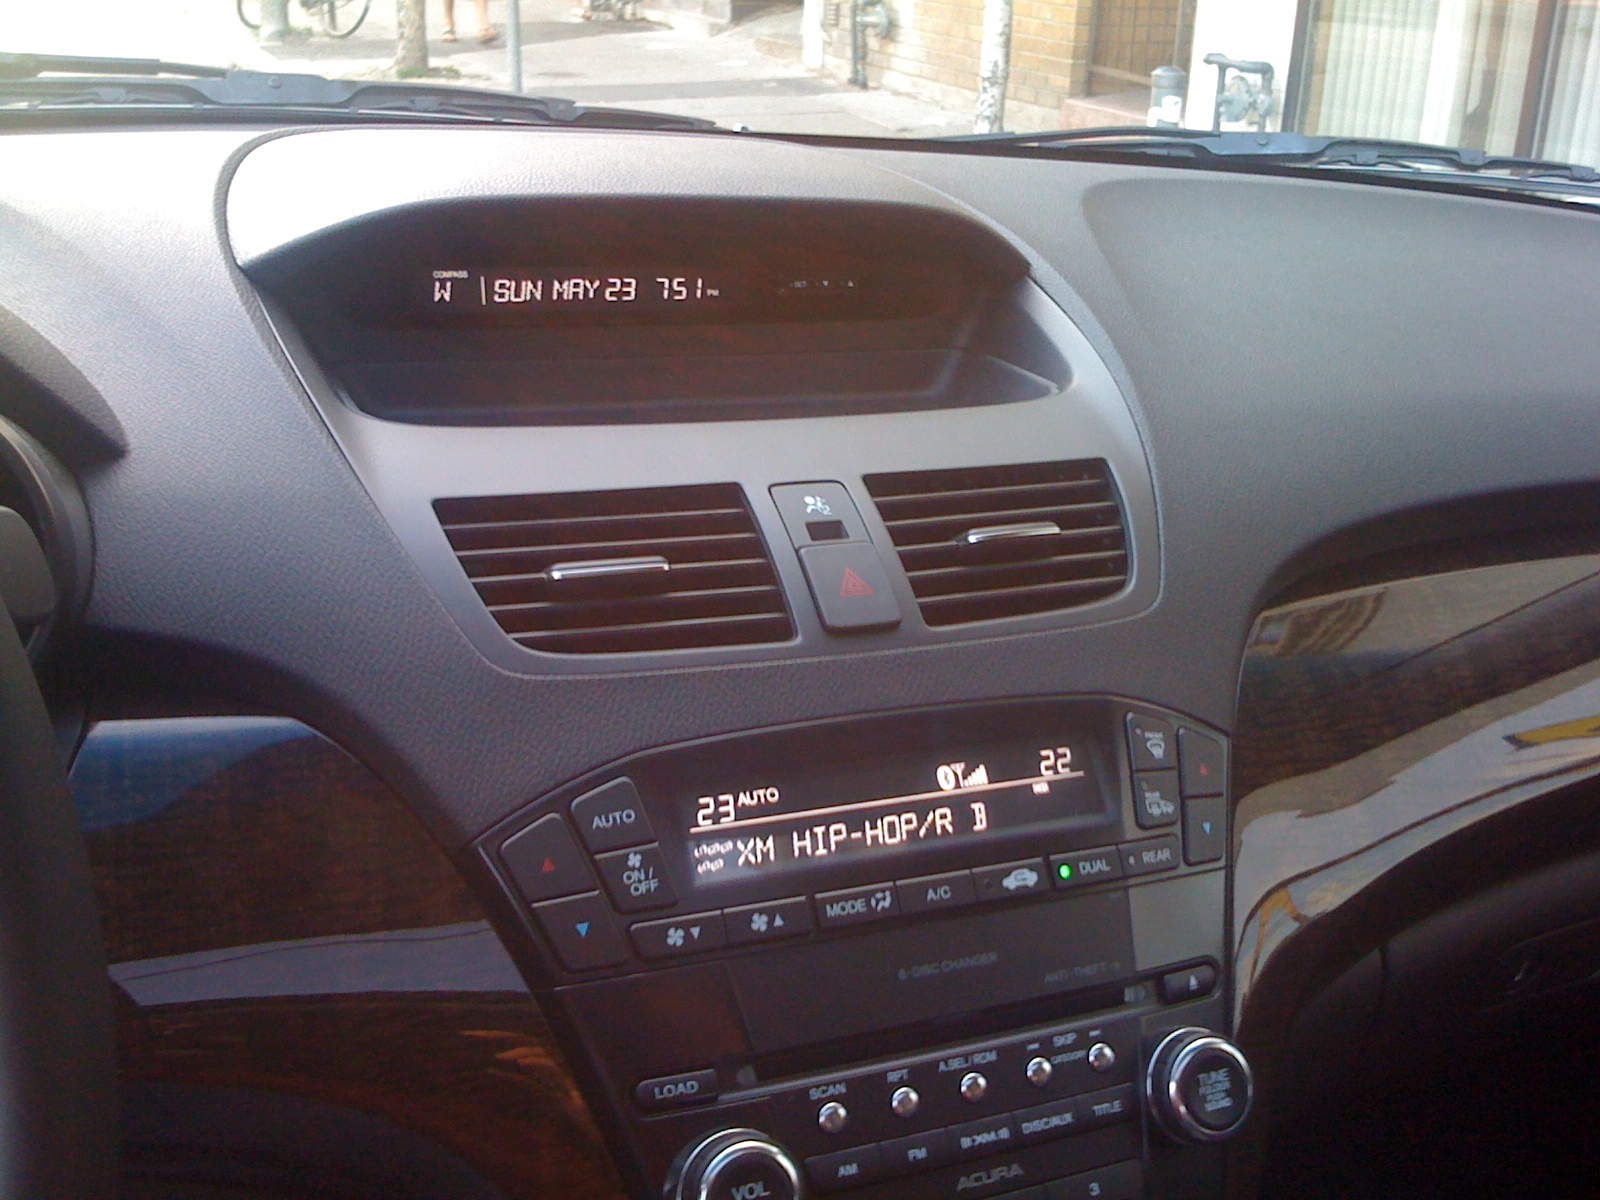 2010 mdx base model dashboard pictures acura mdx forum acura